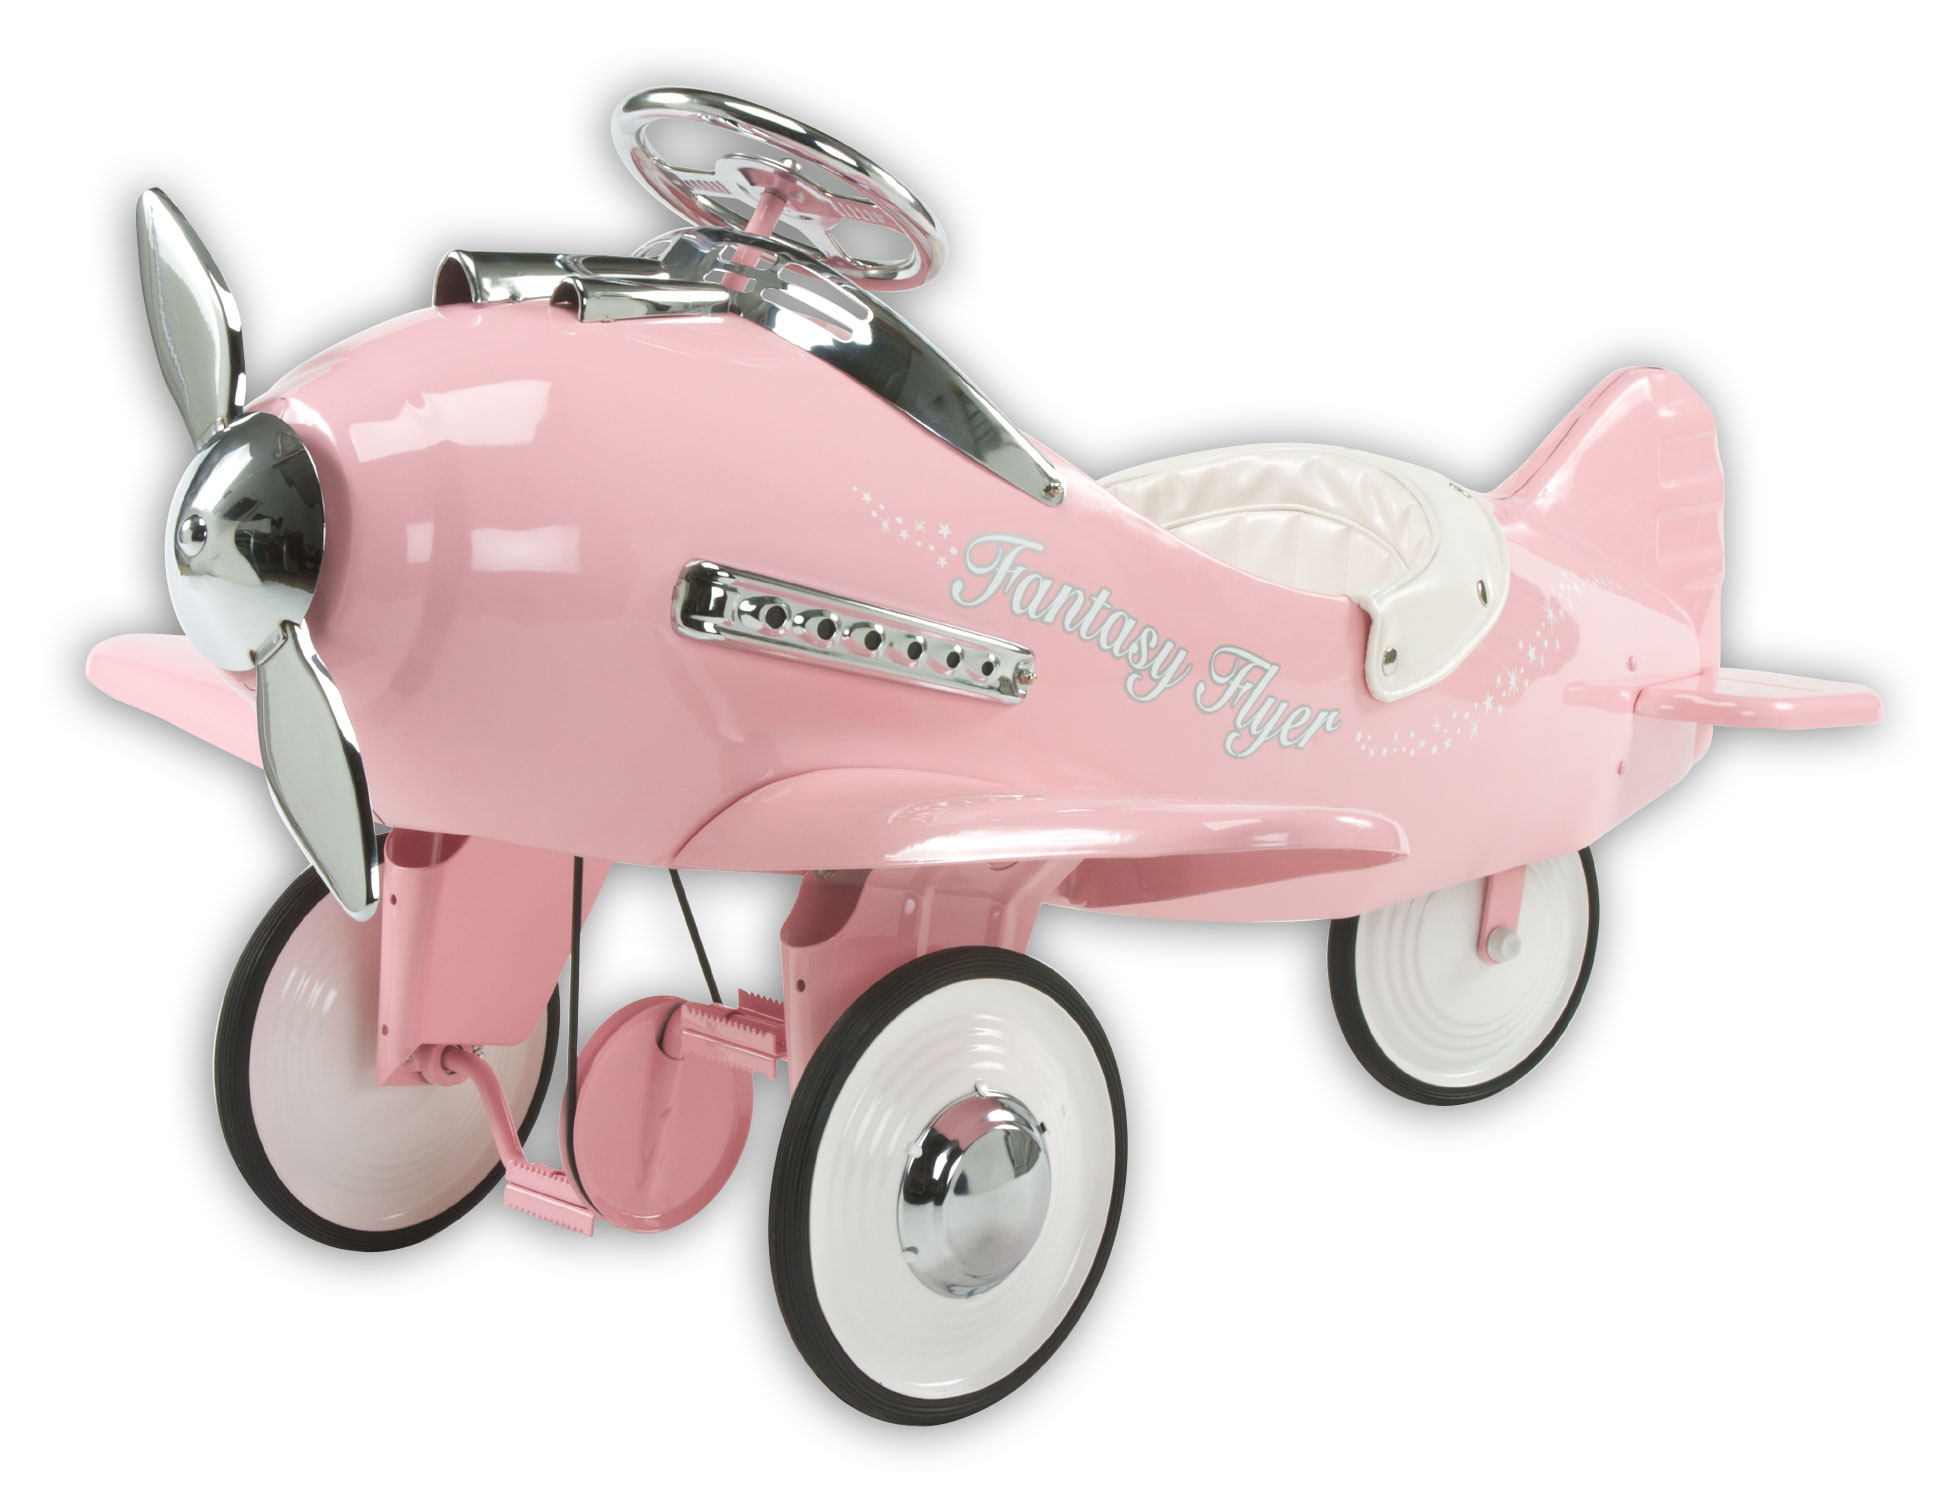 Pink Fantasy Flyer Pedal Plane